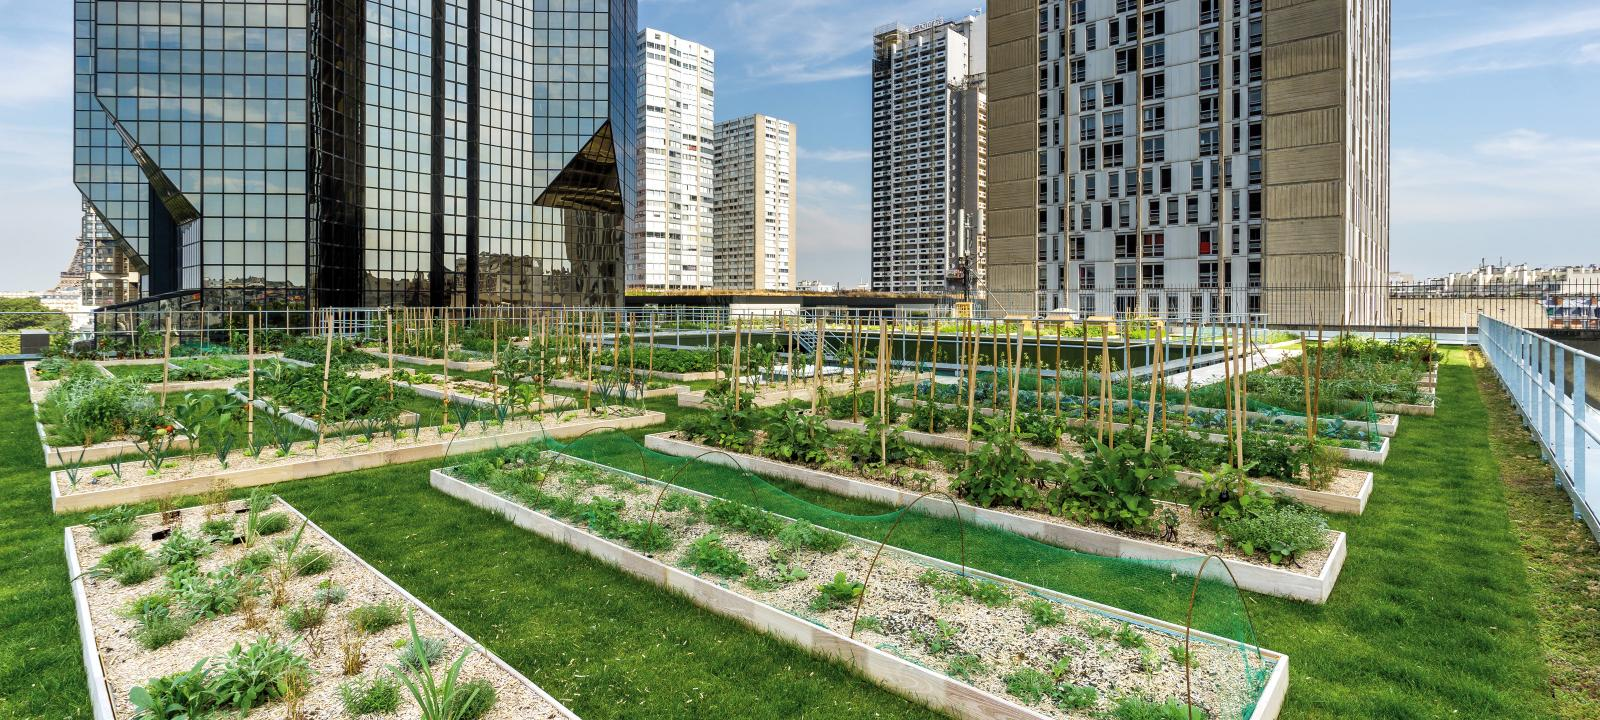 Urban rooftop farming